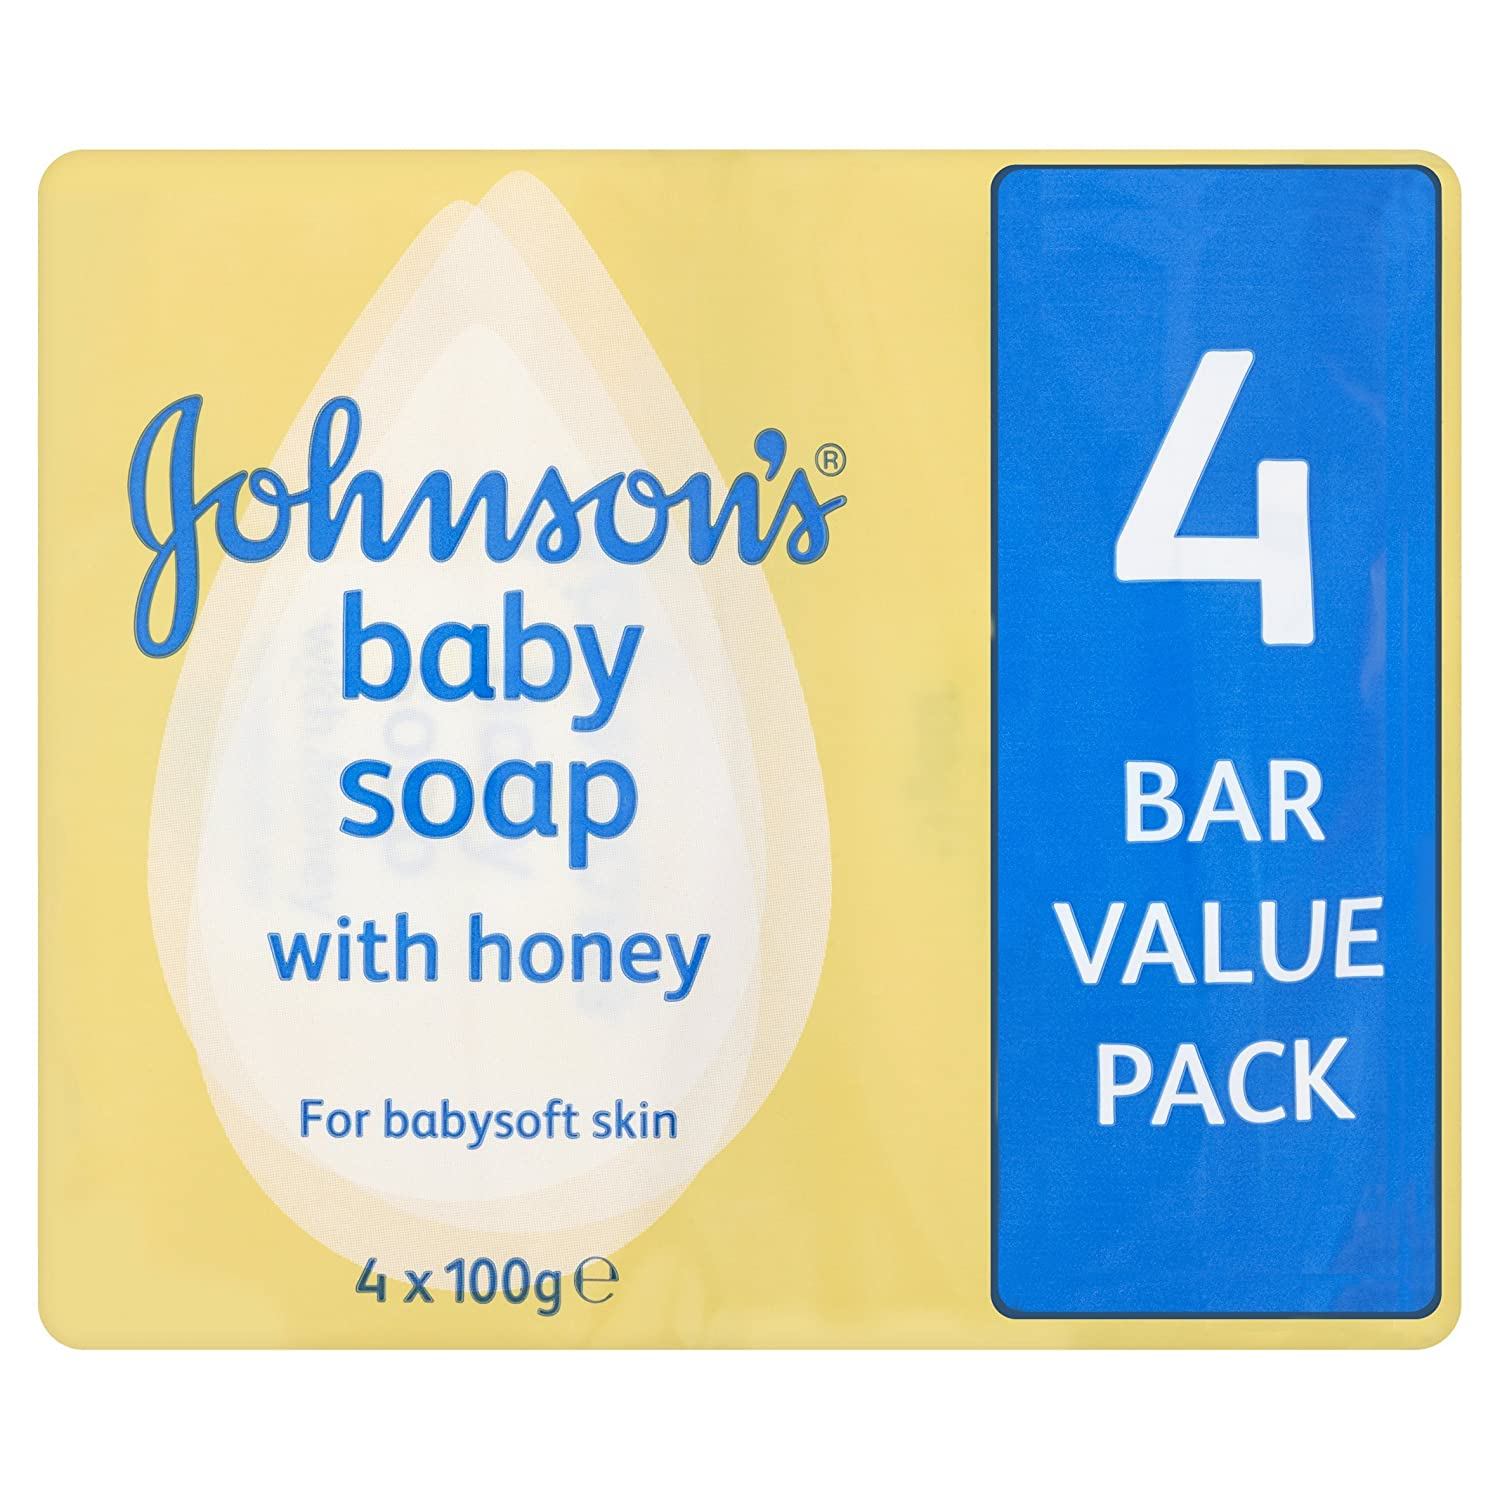 Johnsons Baby Soap Honey With Lotion 4 Pack Cussons Cream Mild And Gentle 100 Gr Bar Soaps Beauty